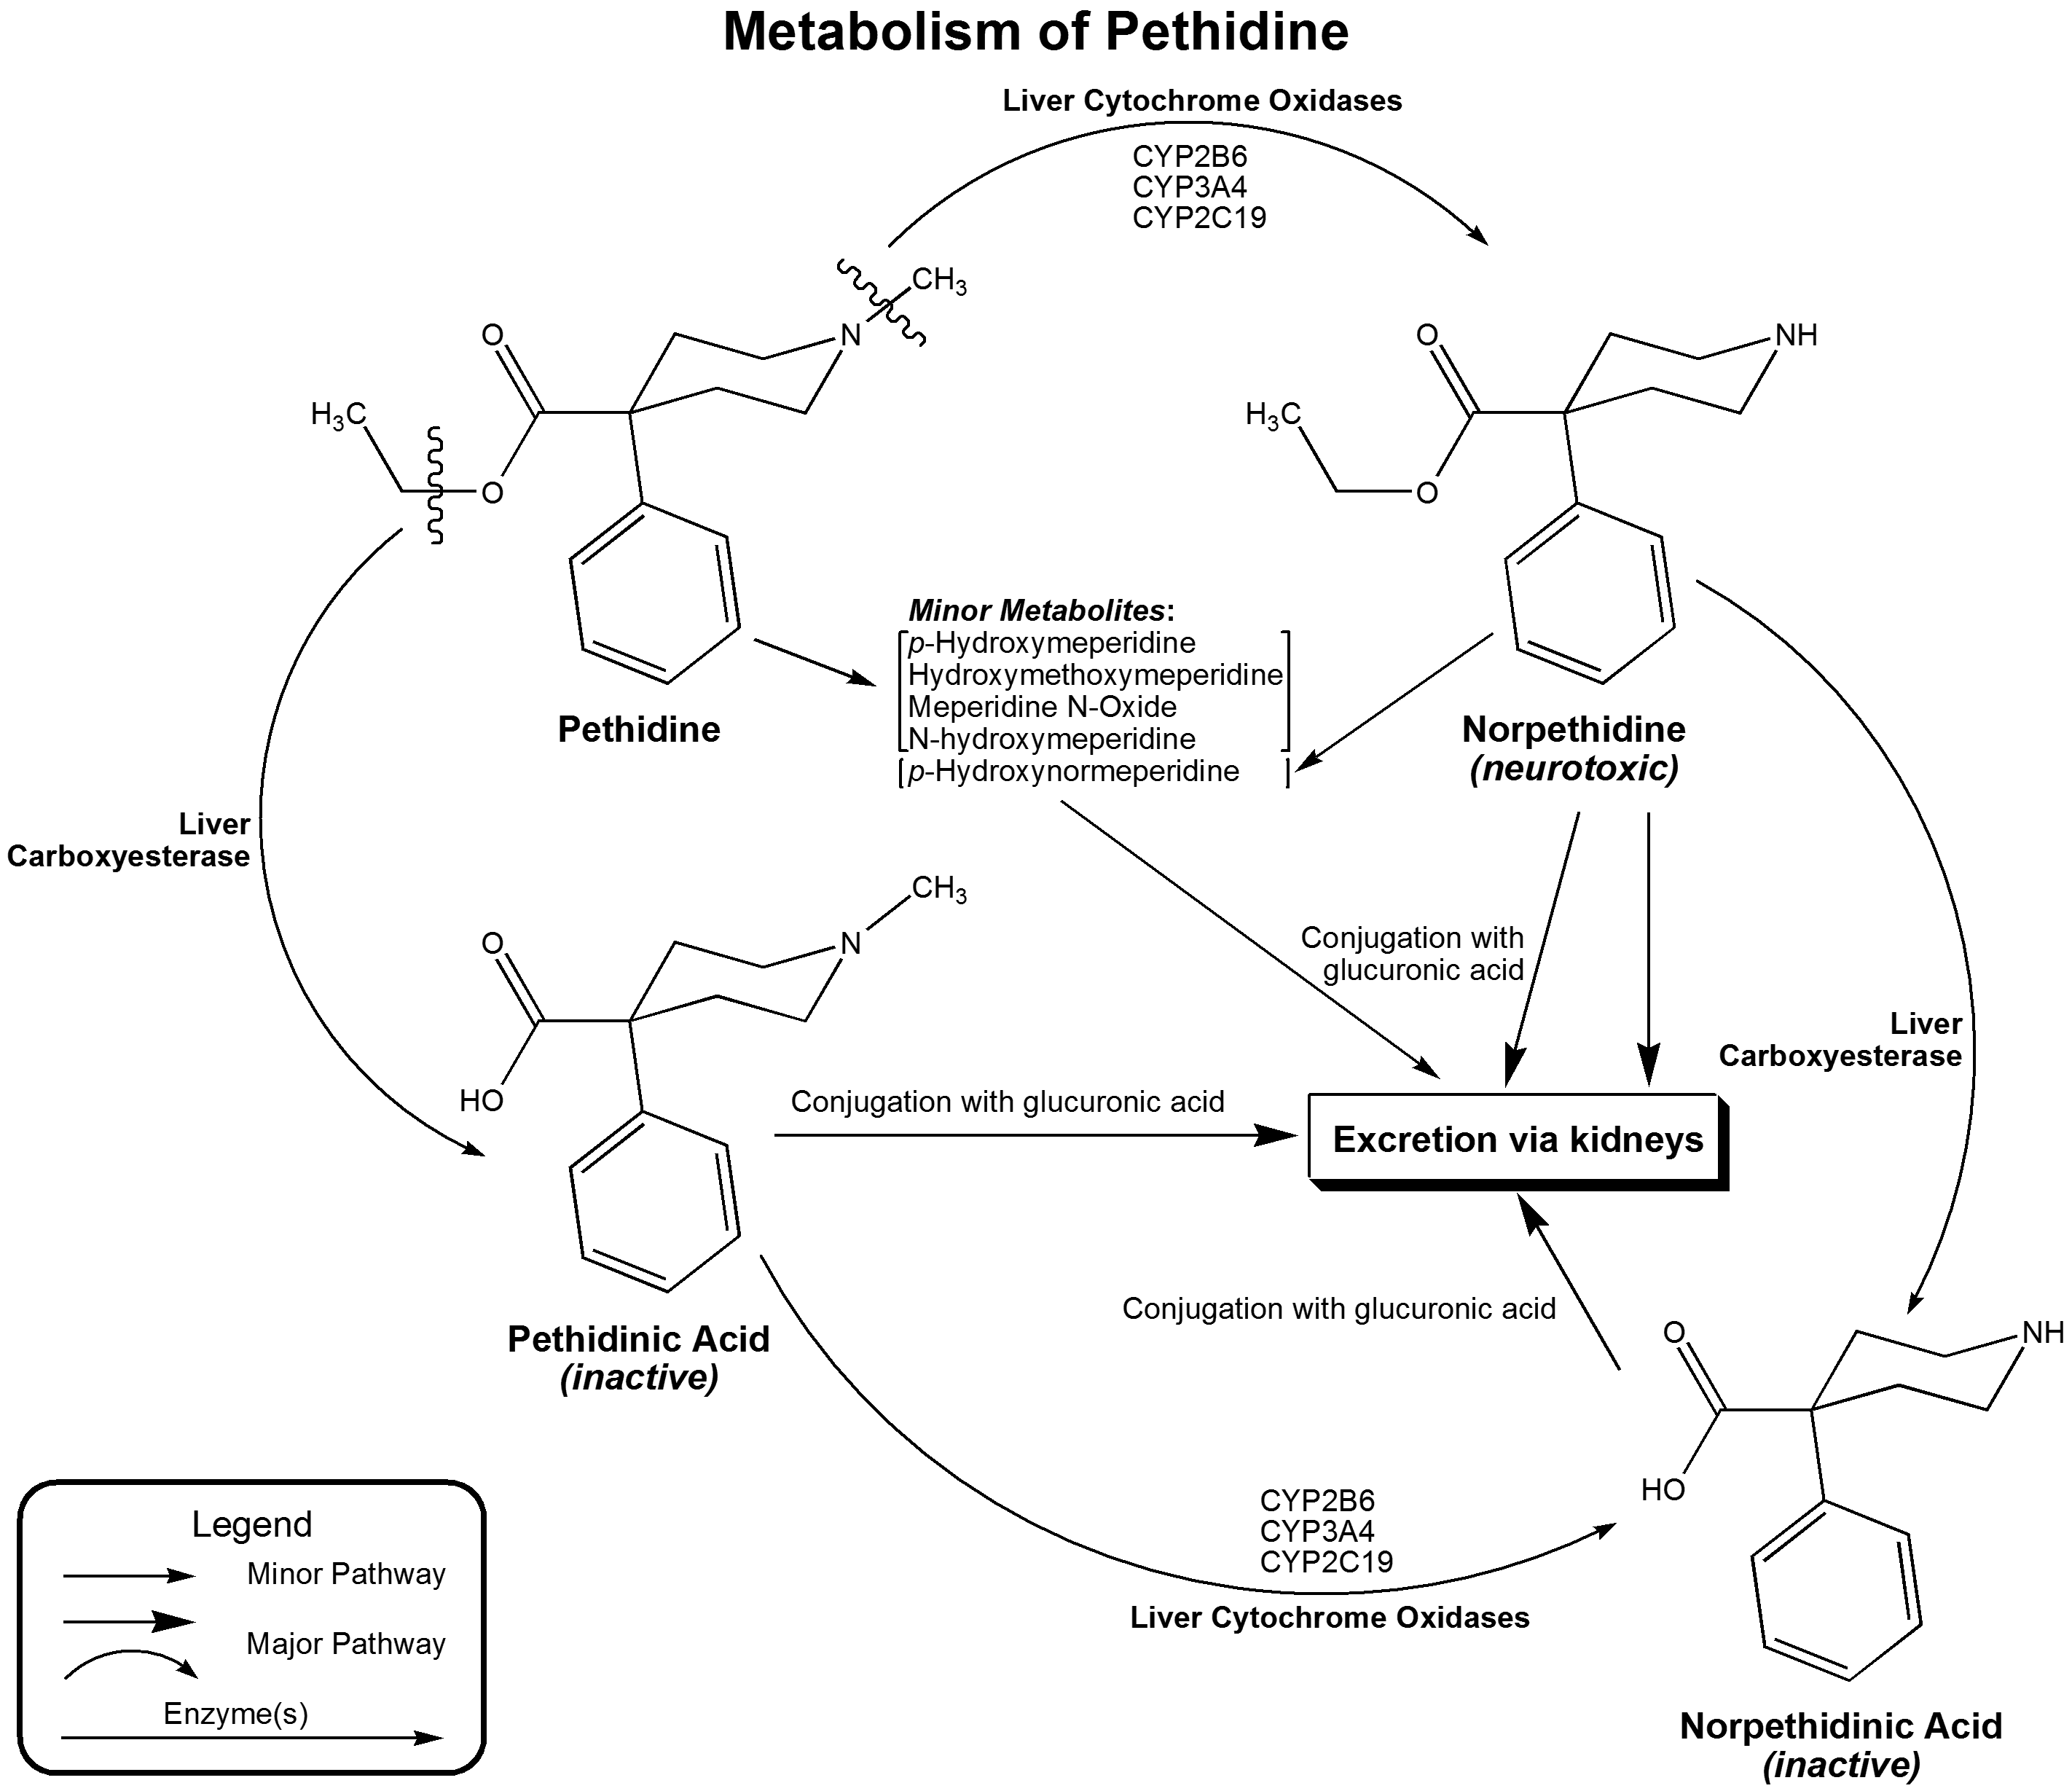 http://upload.wikimedia.org/wikipedia/commons/c/c2/Metabolism_of_pethidine.png